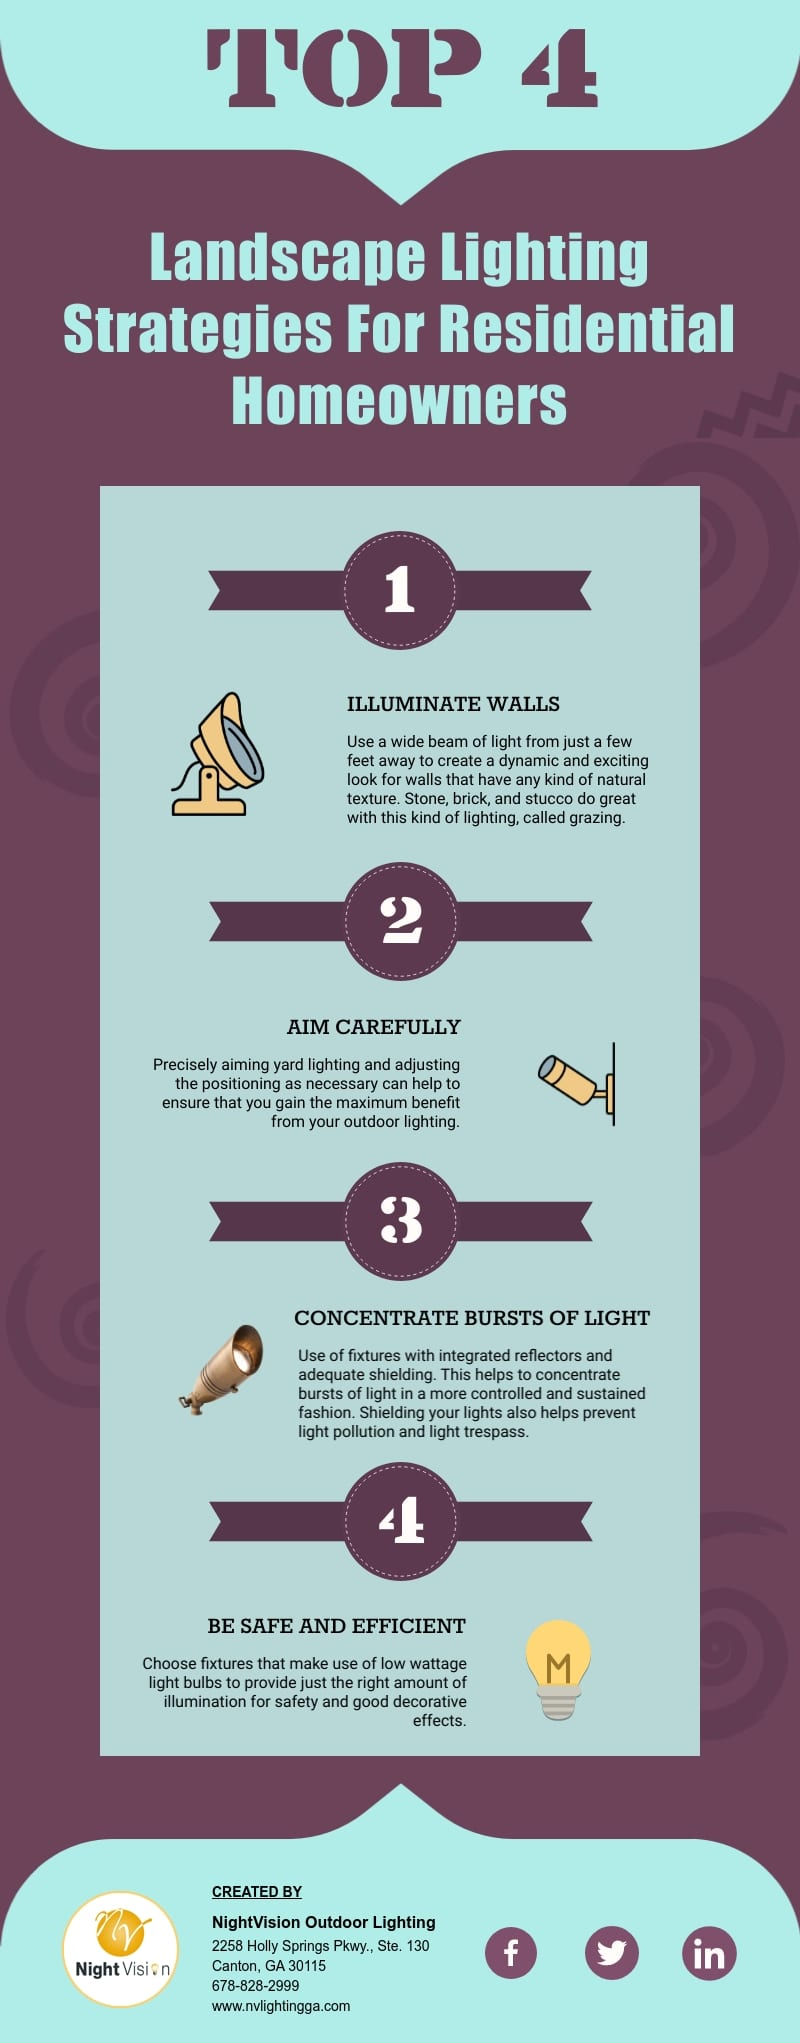 Landscape Lighting Strategies For Residential Homeowners [infographic]